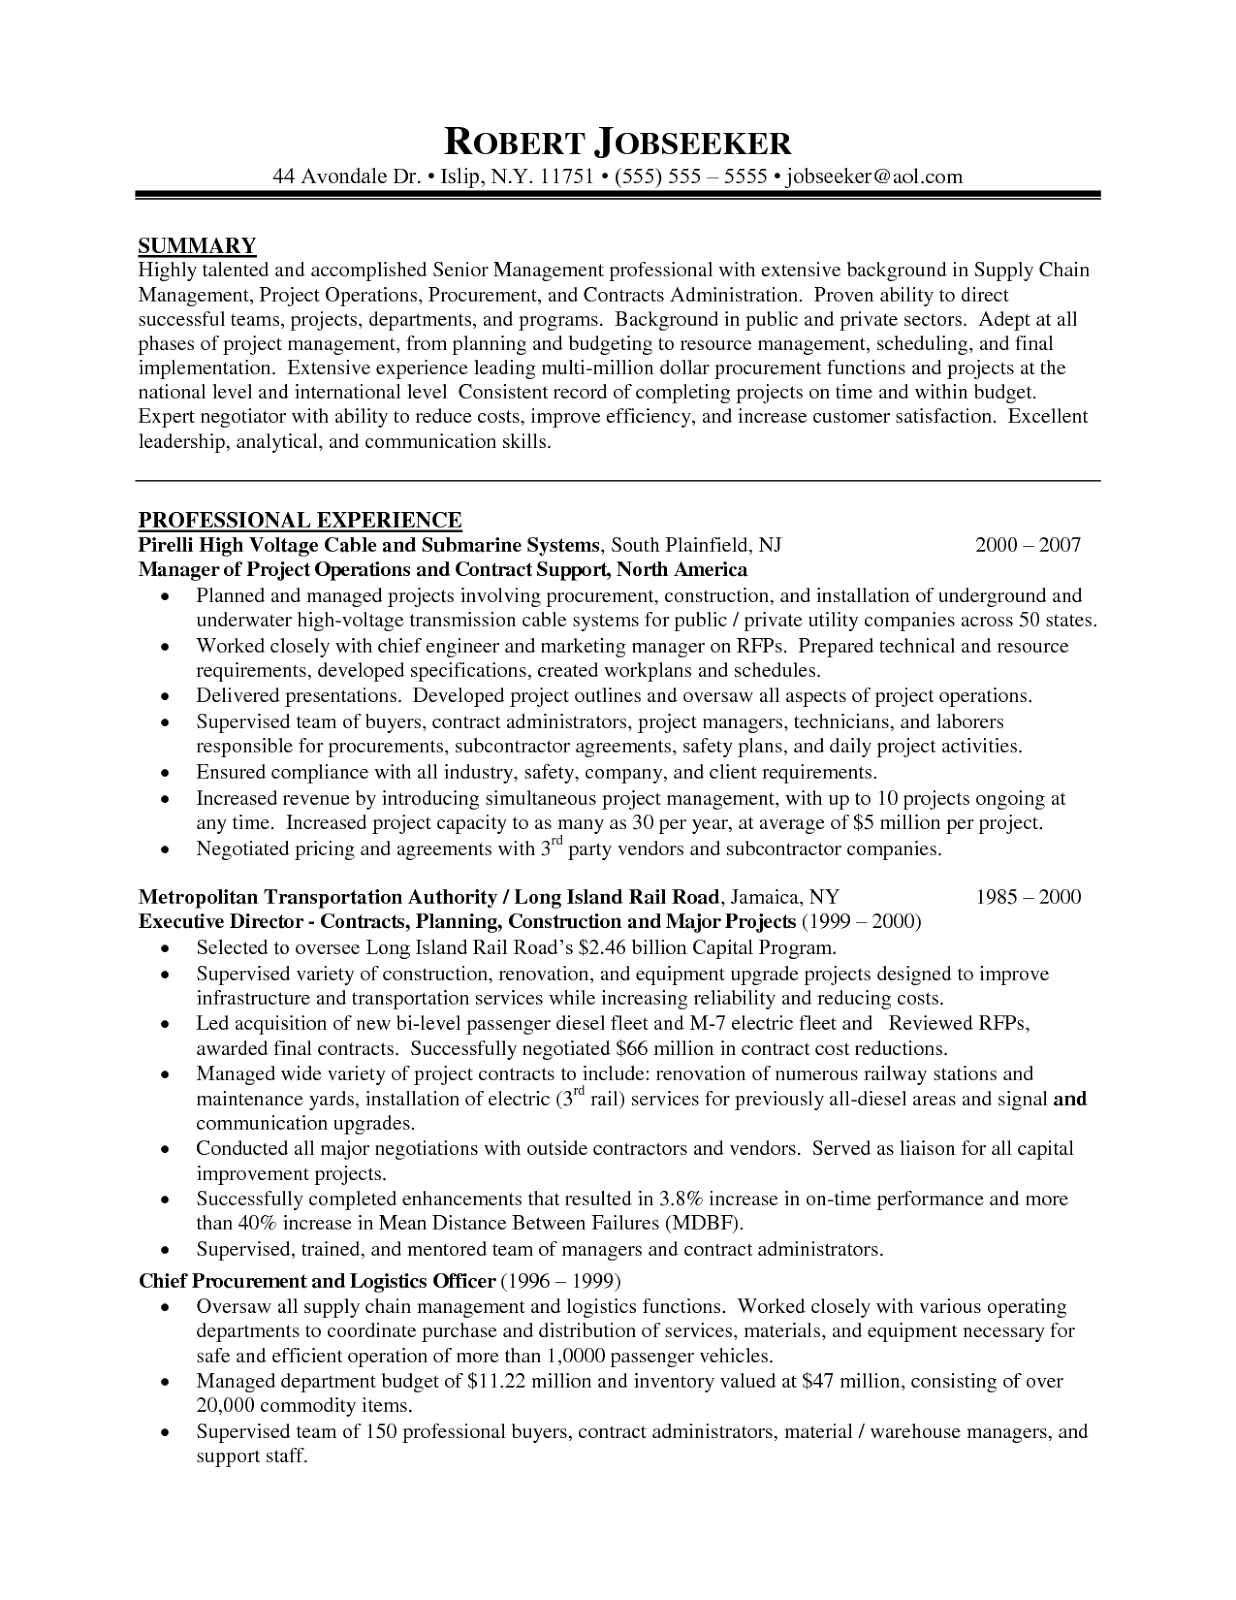 program manager resume good examples sampletips program manager resume good examples